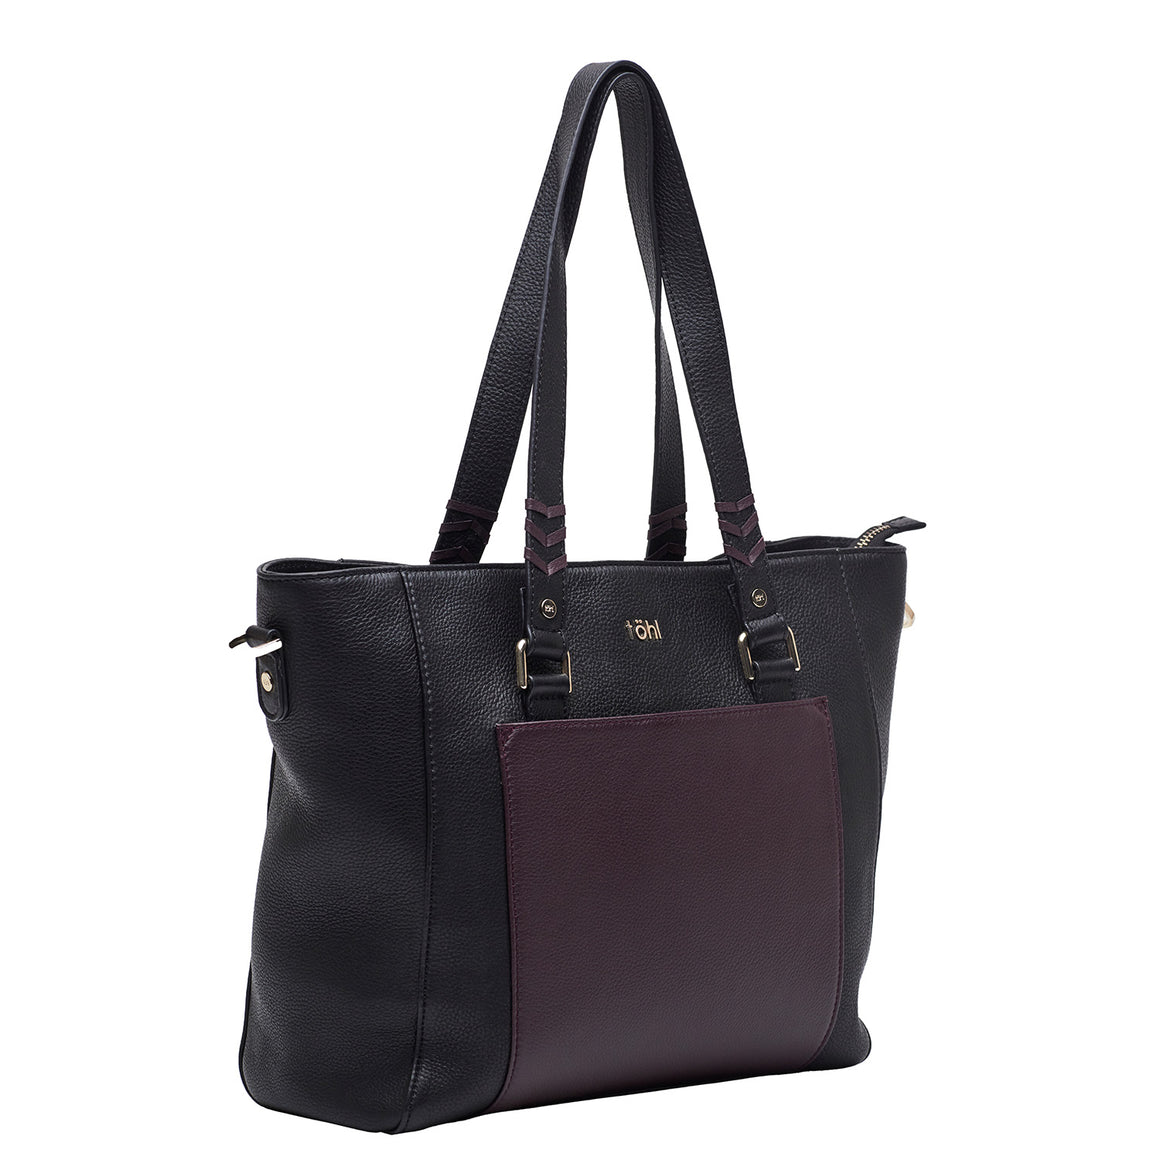 TT 0013 - TOHL MAUREEN WOMEN'S TOTE BAG - BLACK